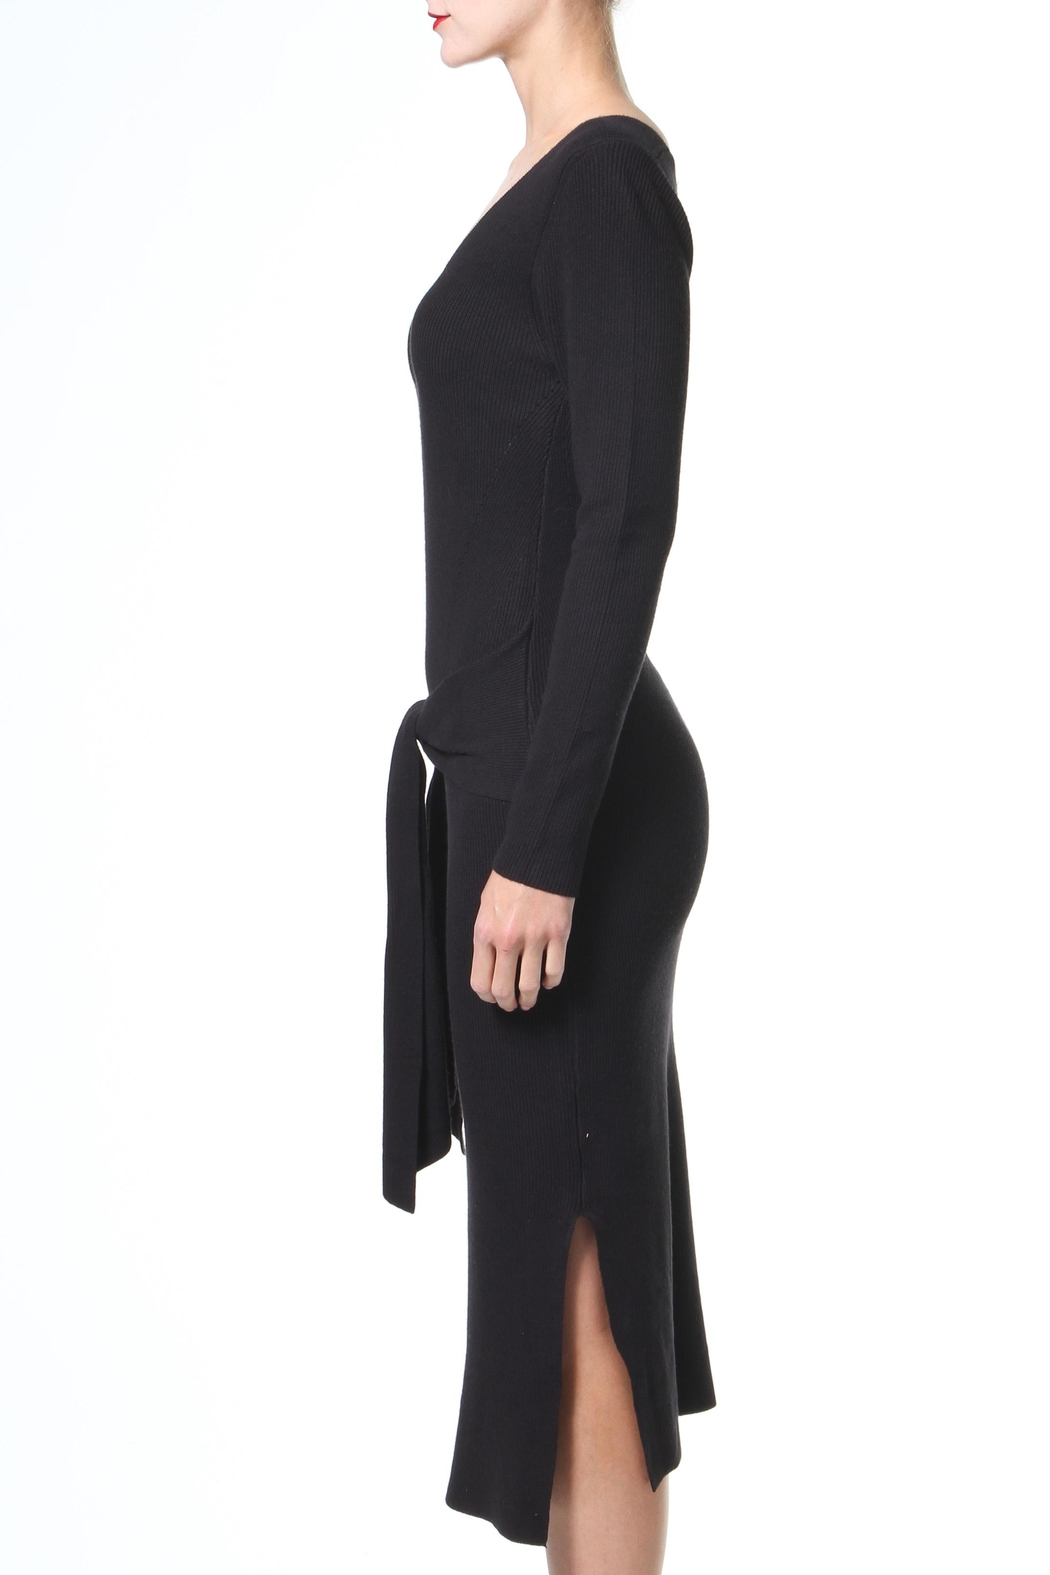 Madonna & Co Tie Front Lbd - Front Full Image